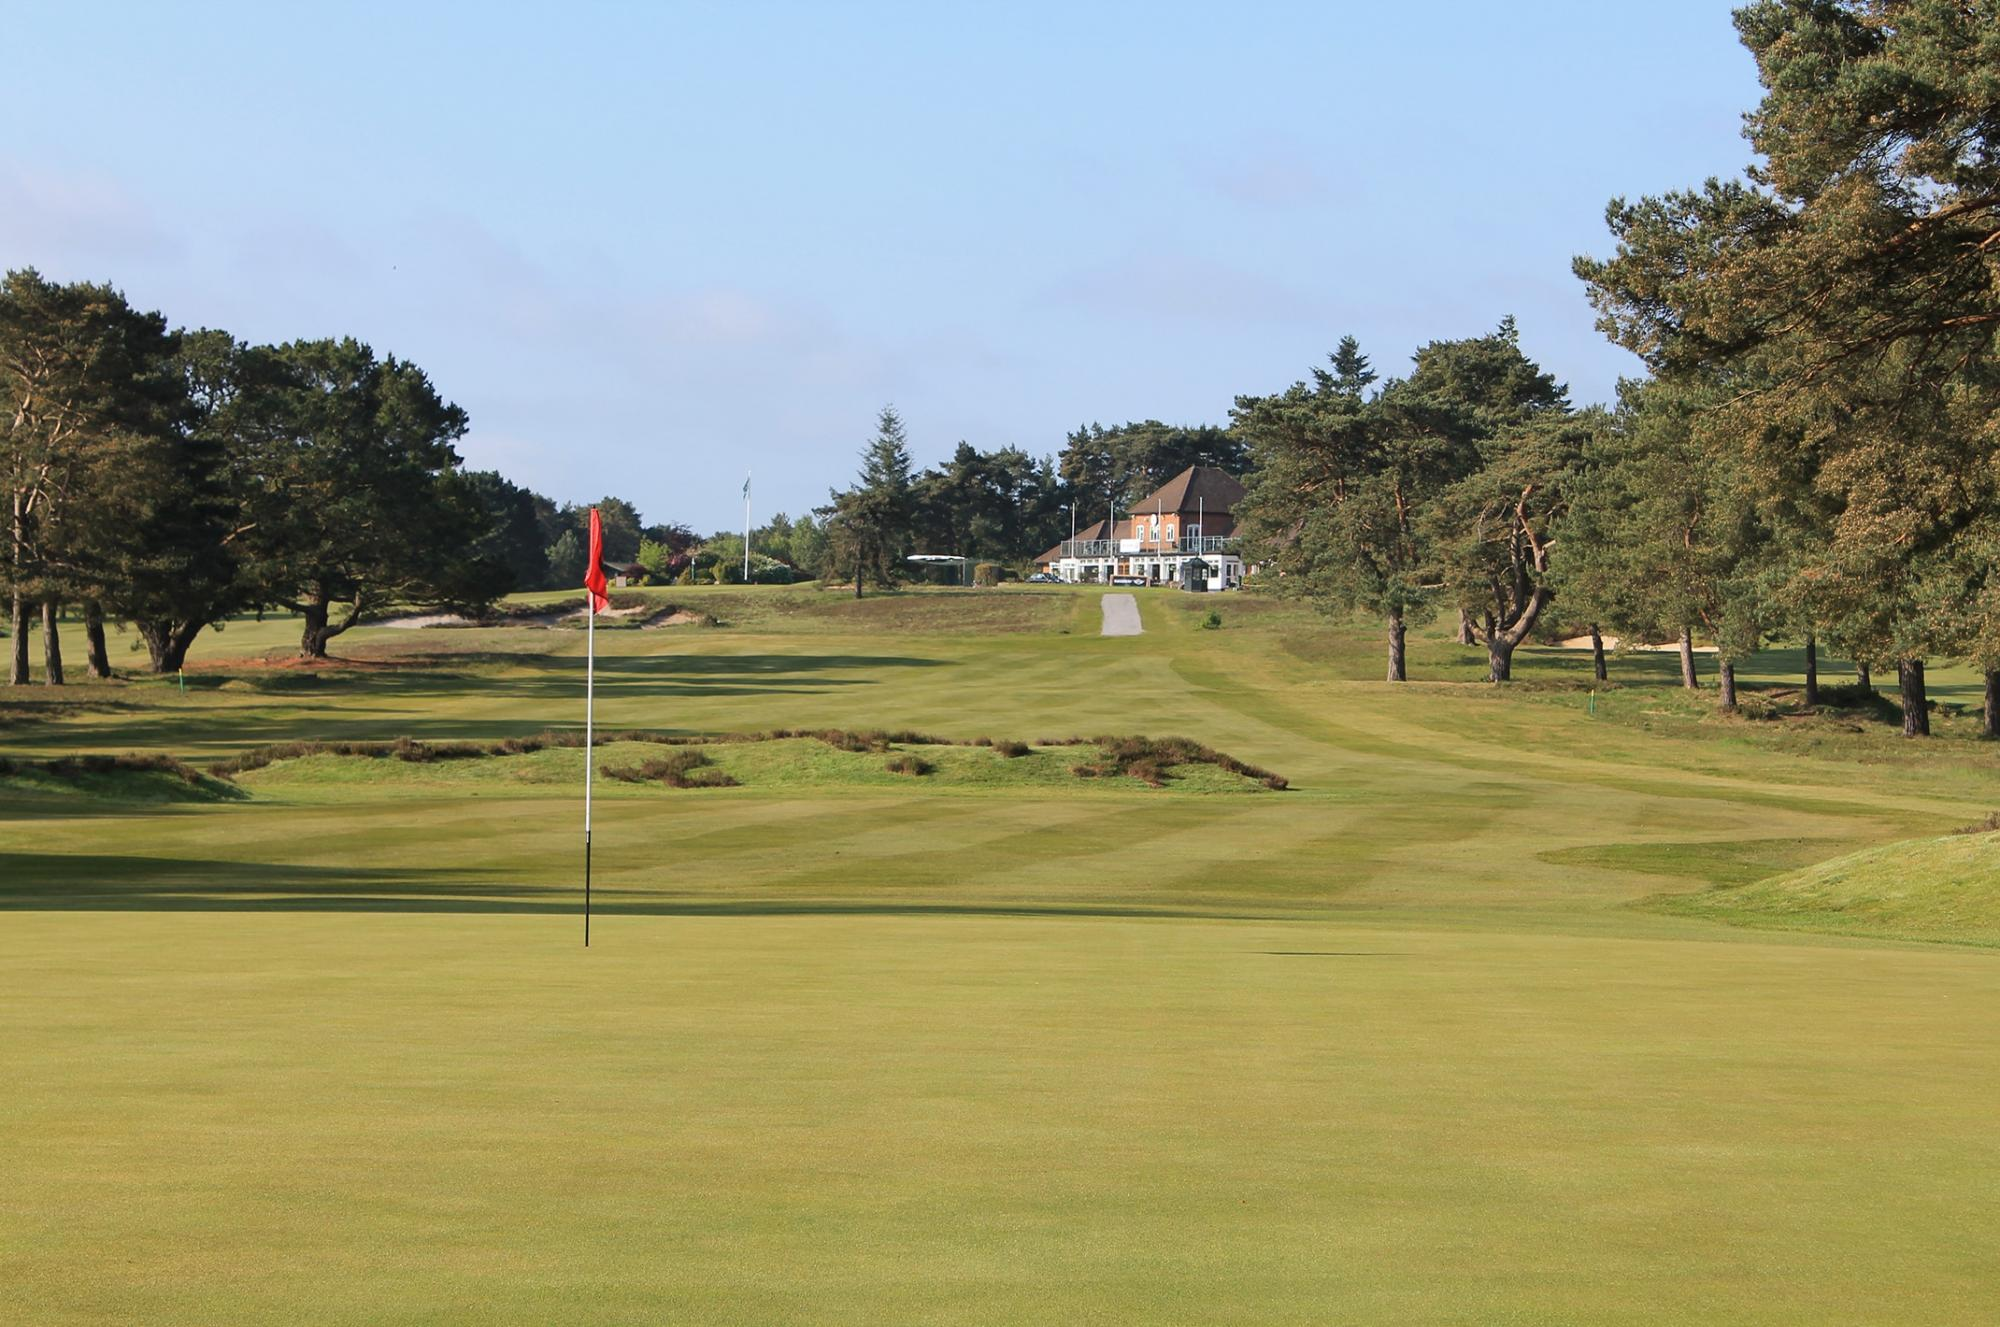 The Ferndown Golf Club's scenic golf course in sensational Devon.